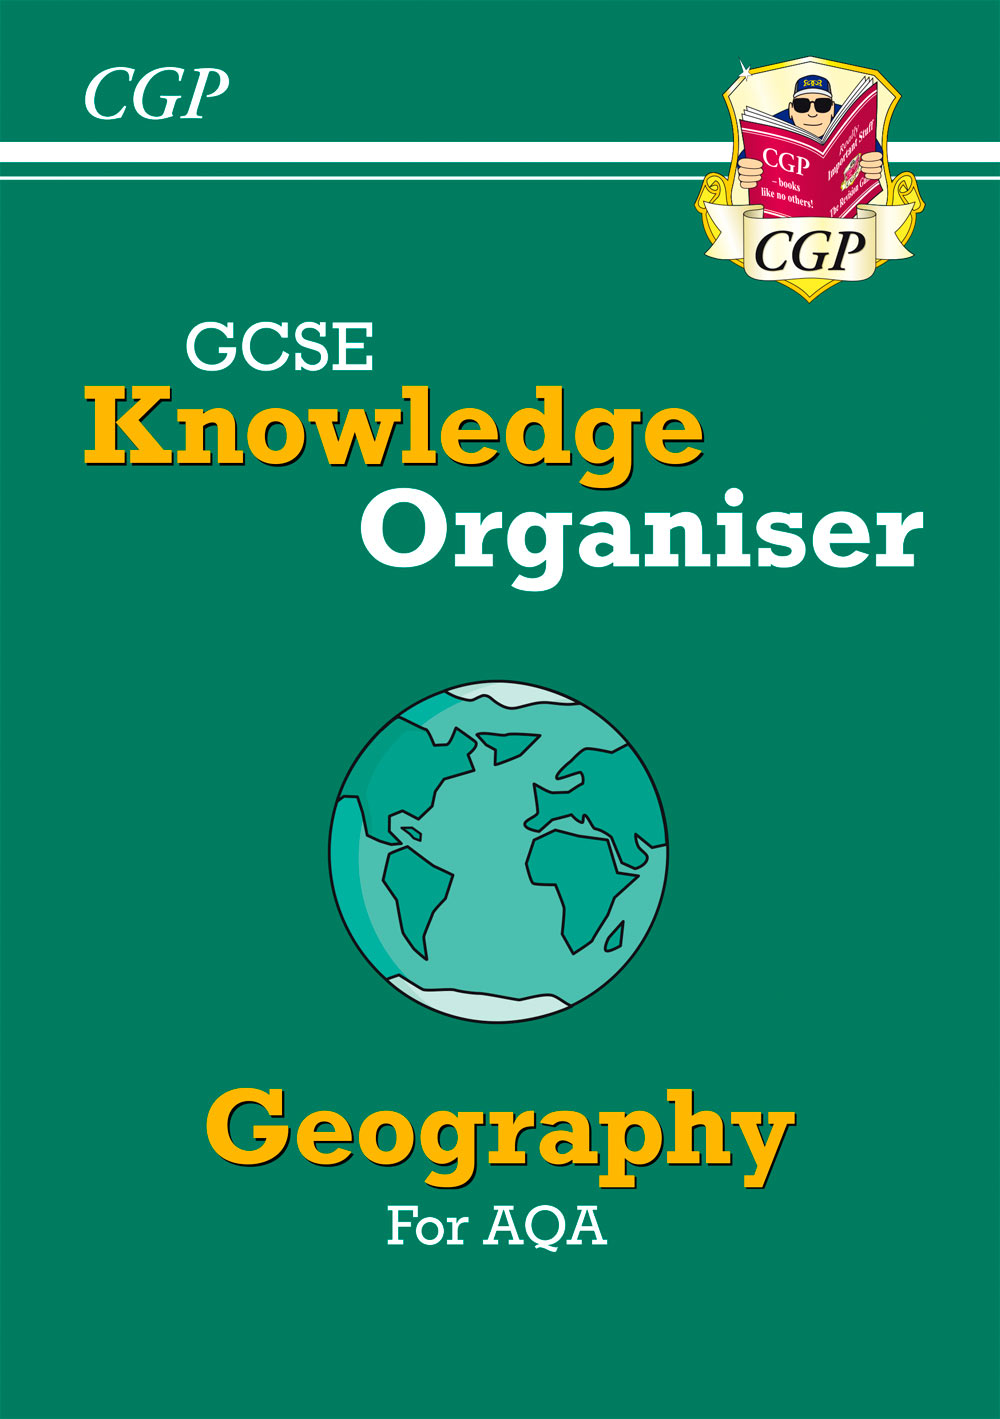 GANO41 - New GCSE Geography Knowledge Organiser - AQA